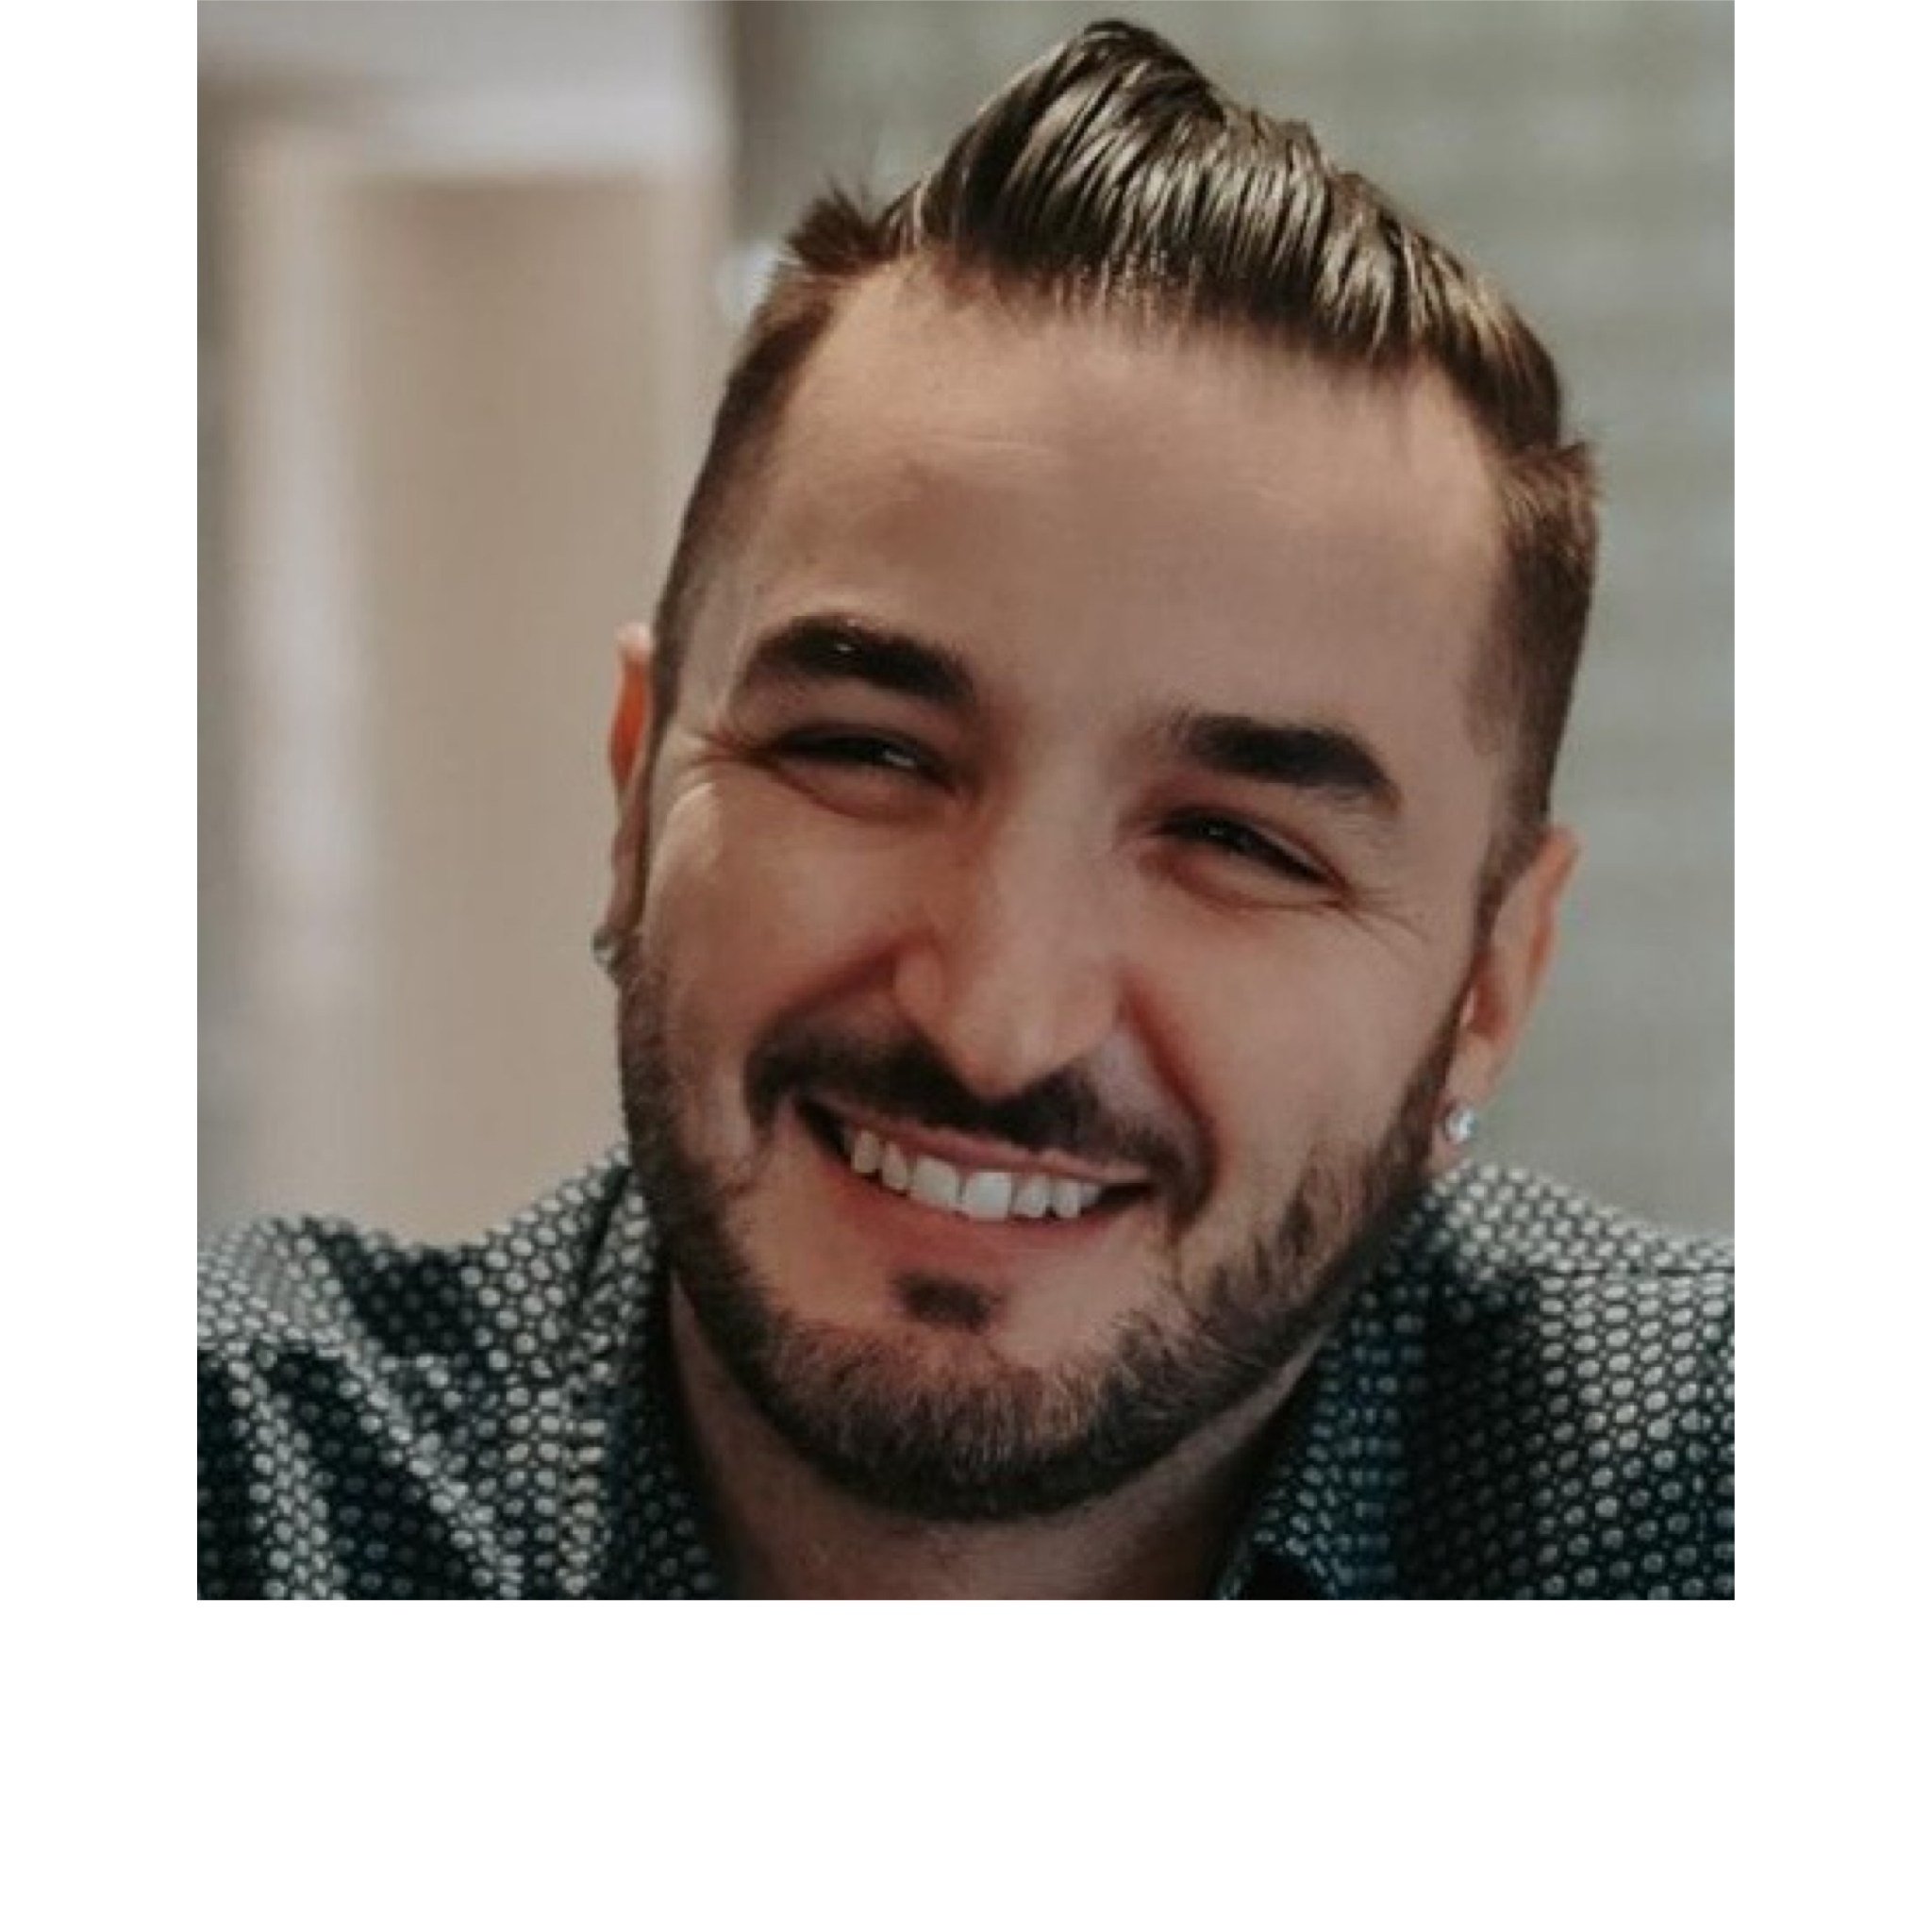 Manager of USA